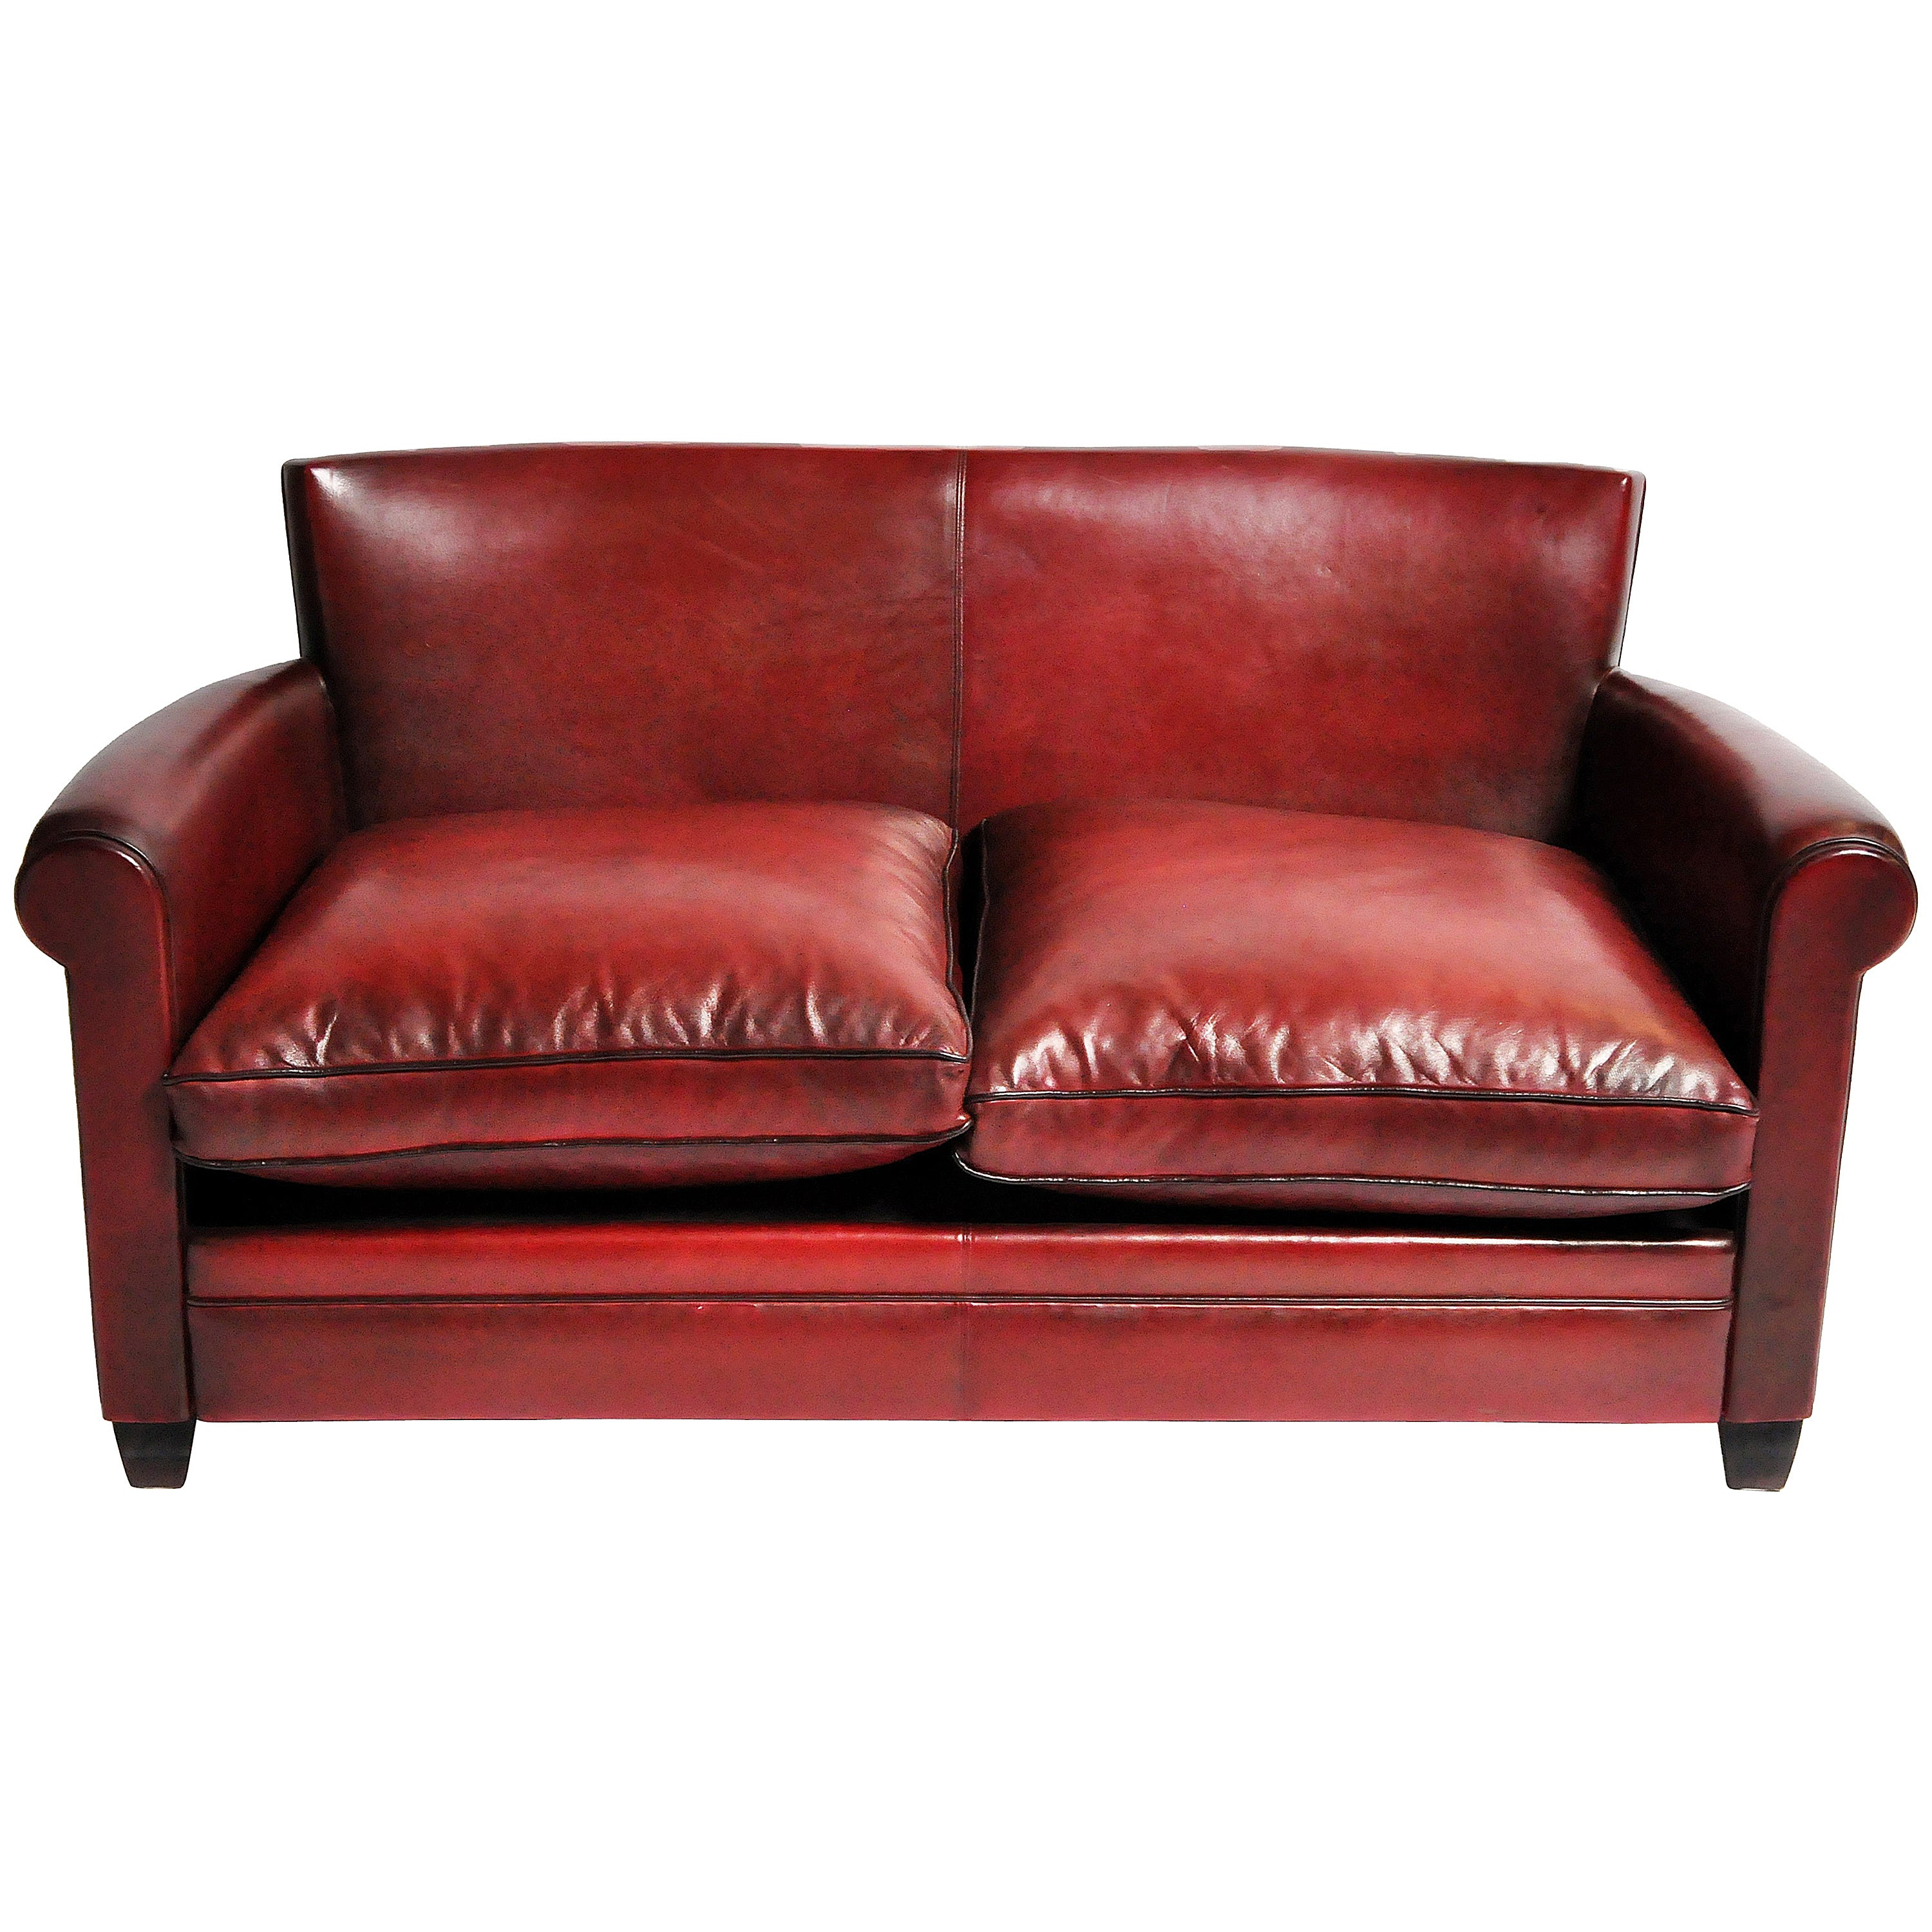 Grand Parisian Style Red Leather Sofa For Sale at 1stdibs